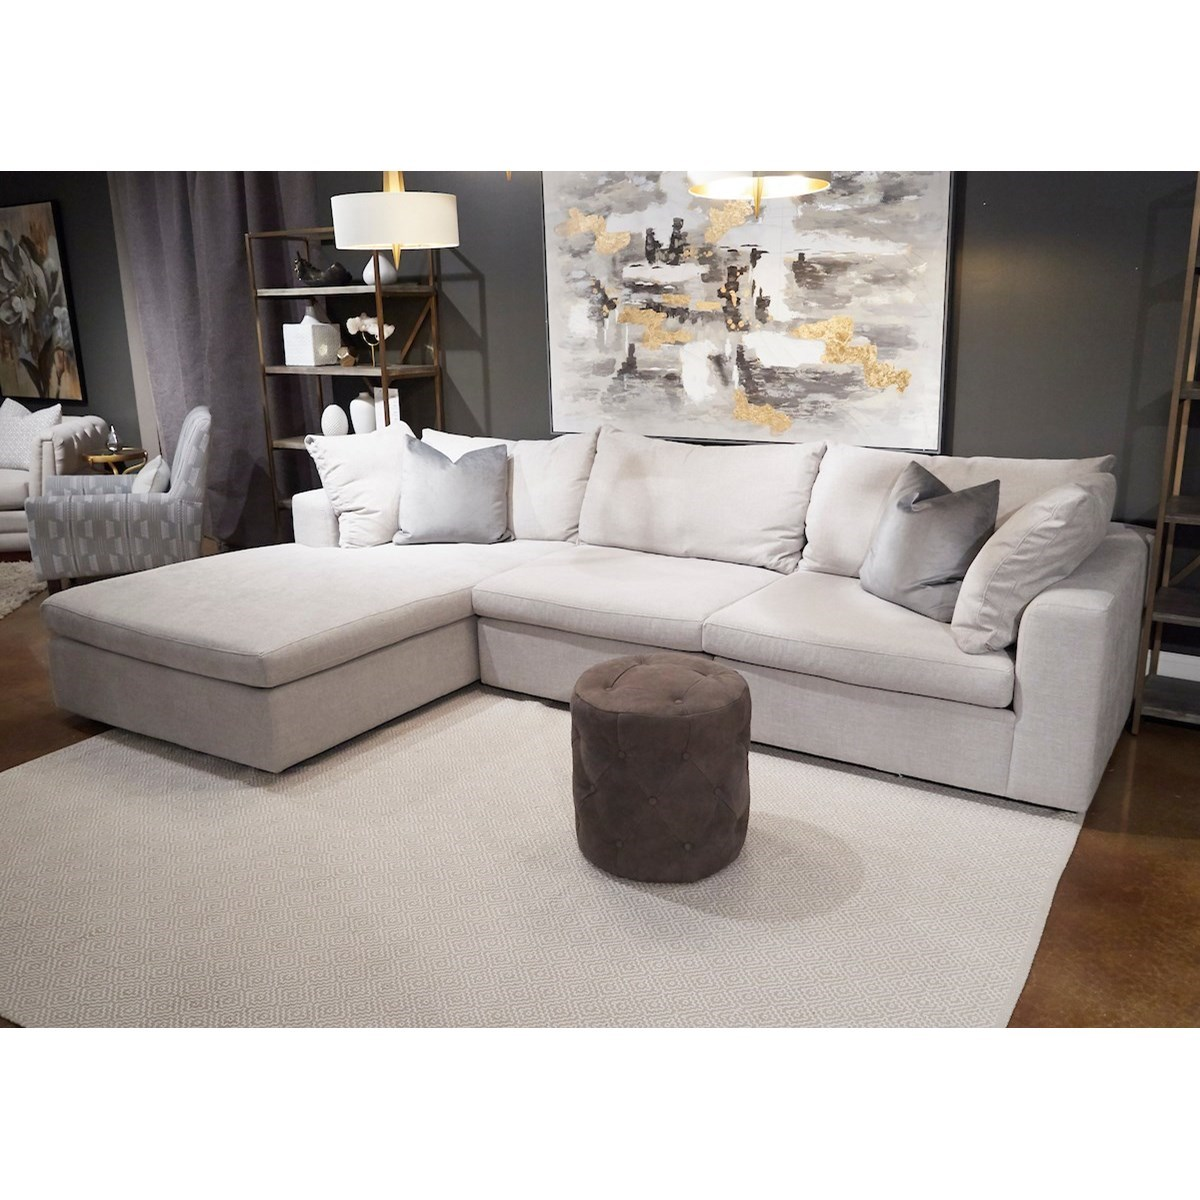 Arnell 3-Seat Sectional Sofa w/ LAF Chaise by Klaussner at Johnny Janosik